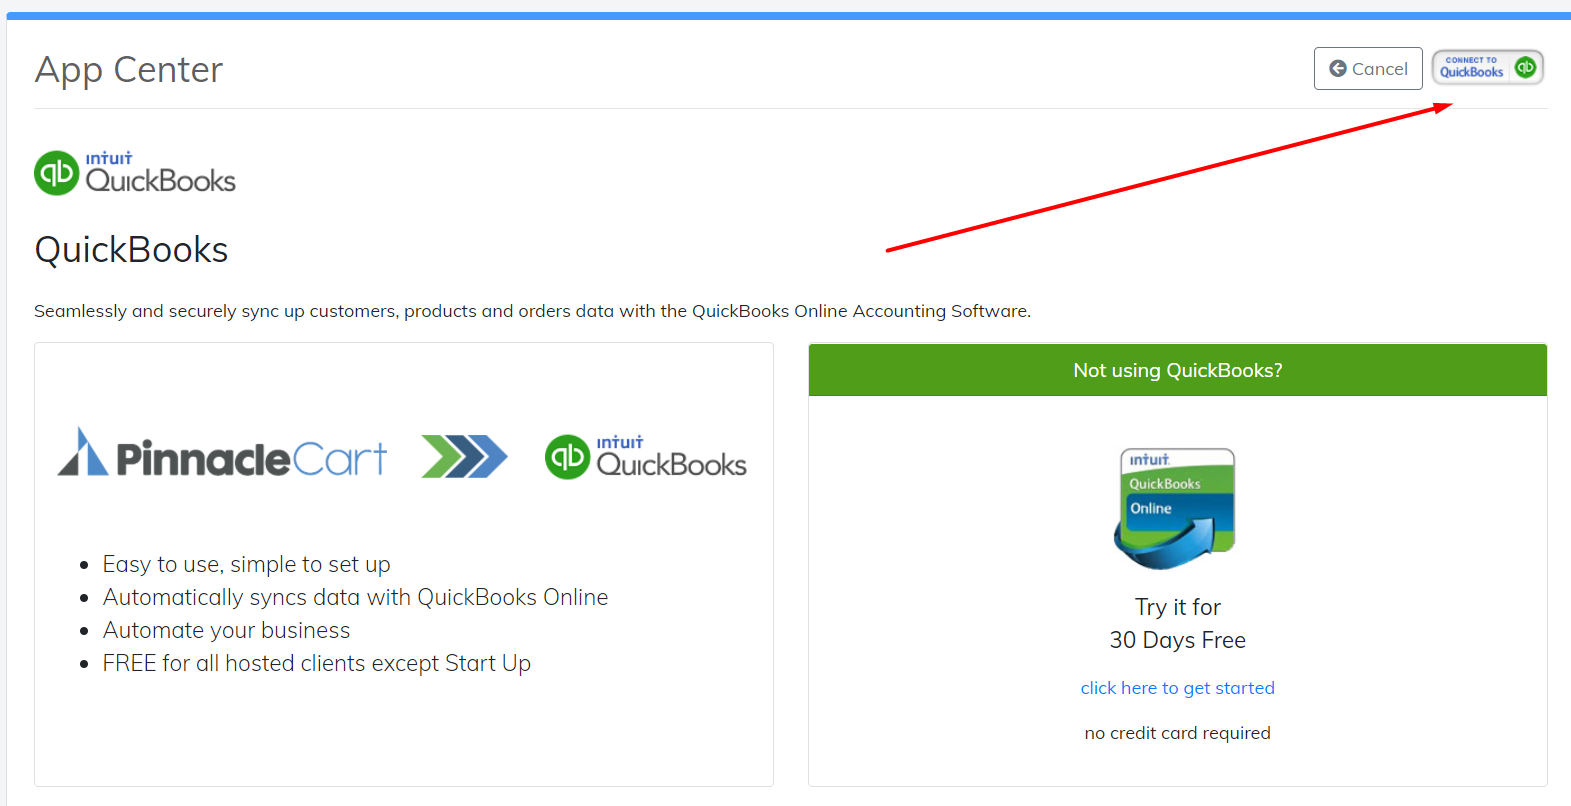 connect to quickbooks button